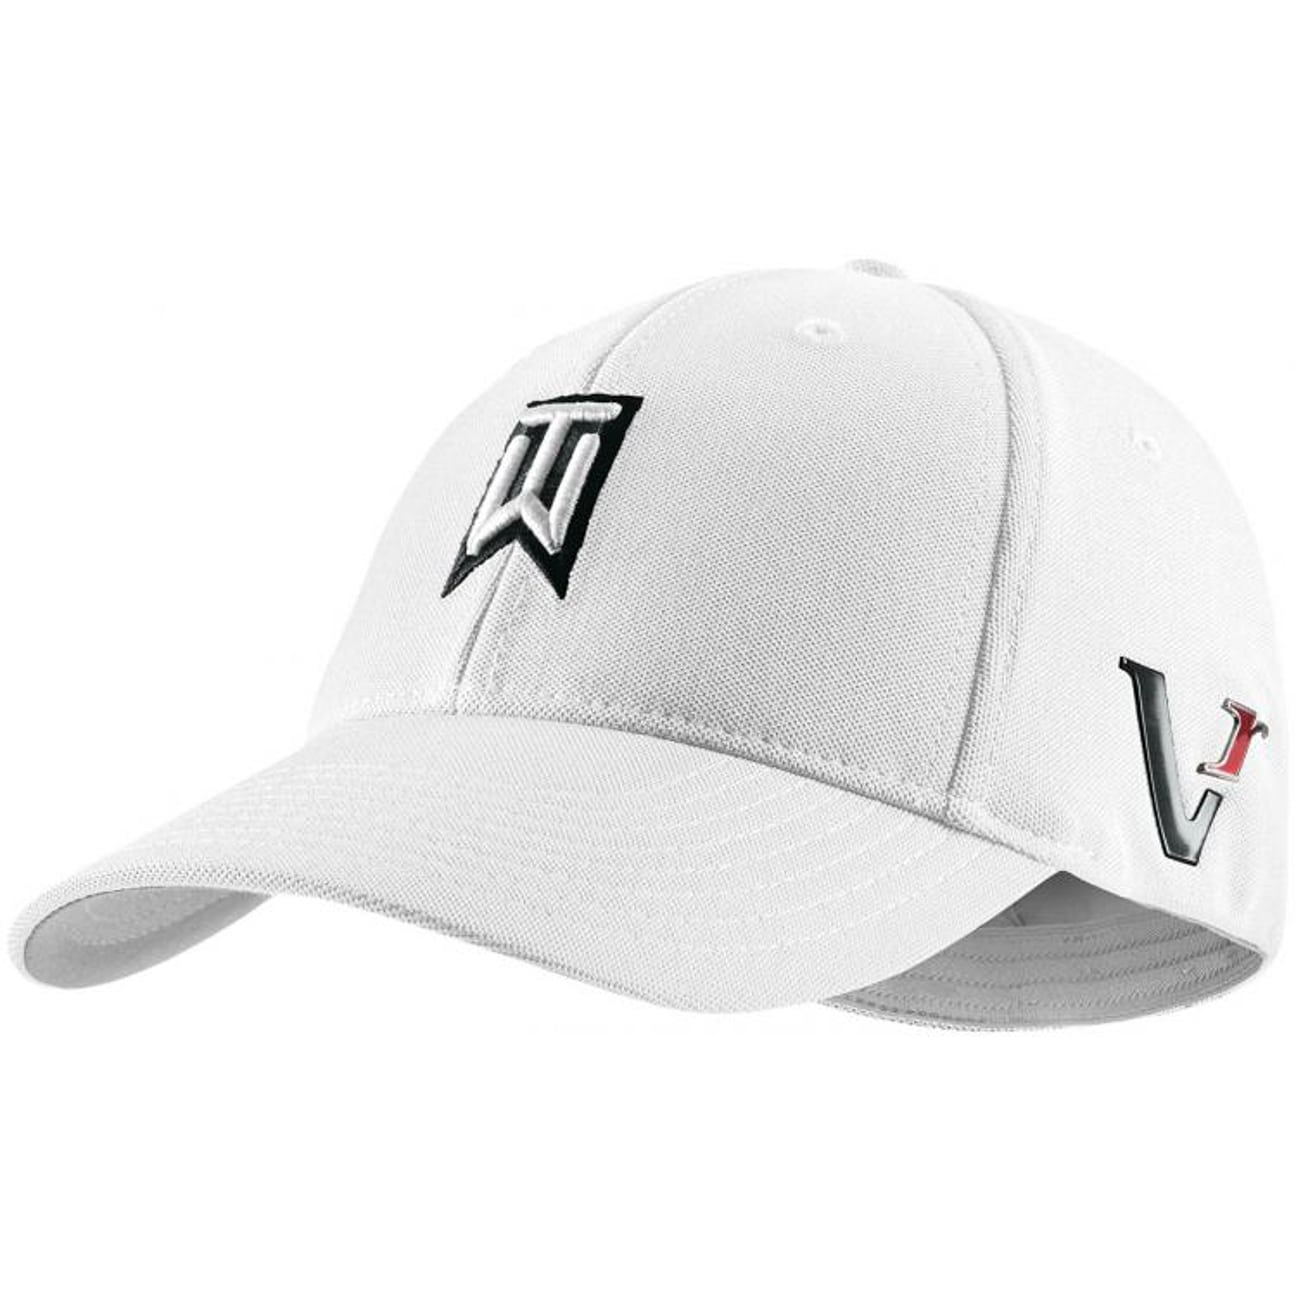 ... Tiger Woods Tour Flex Cap by Nike - white 1 946722eb8b6